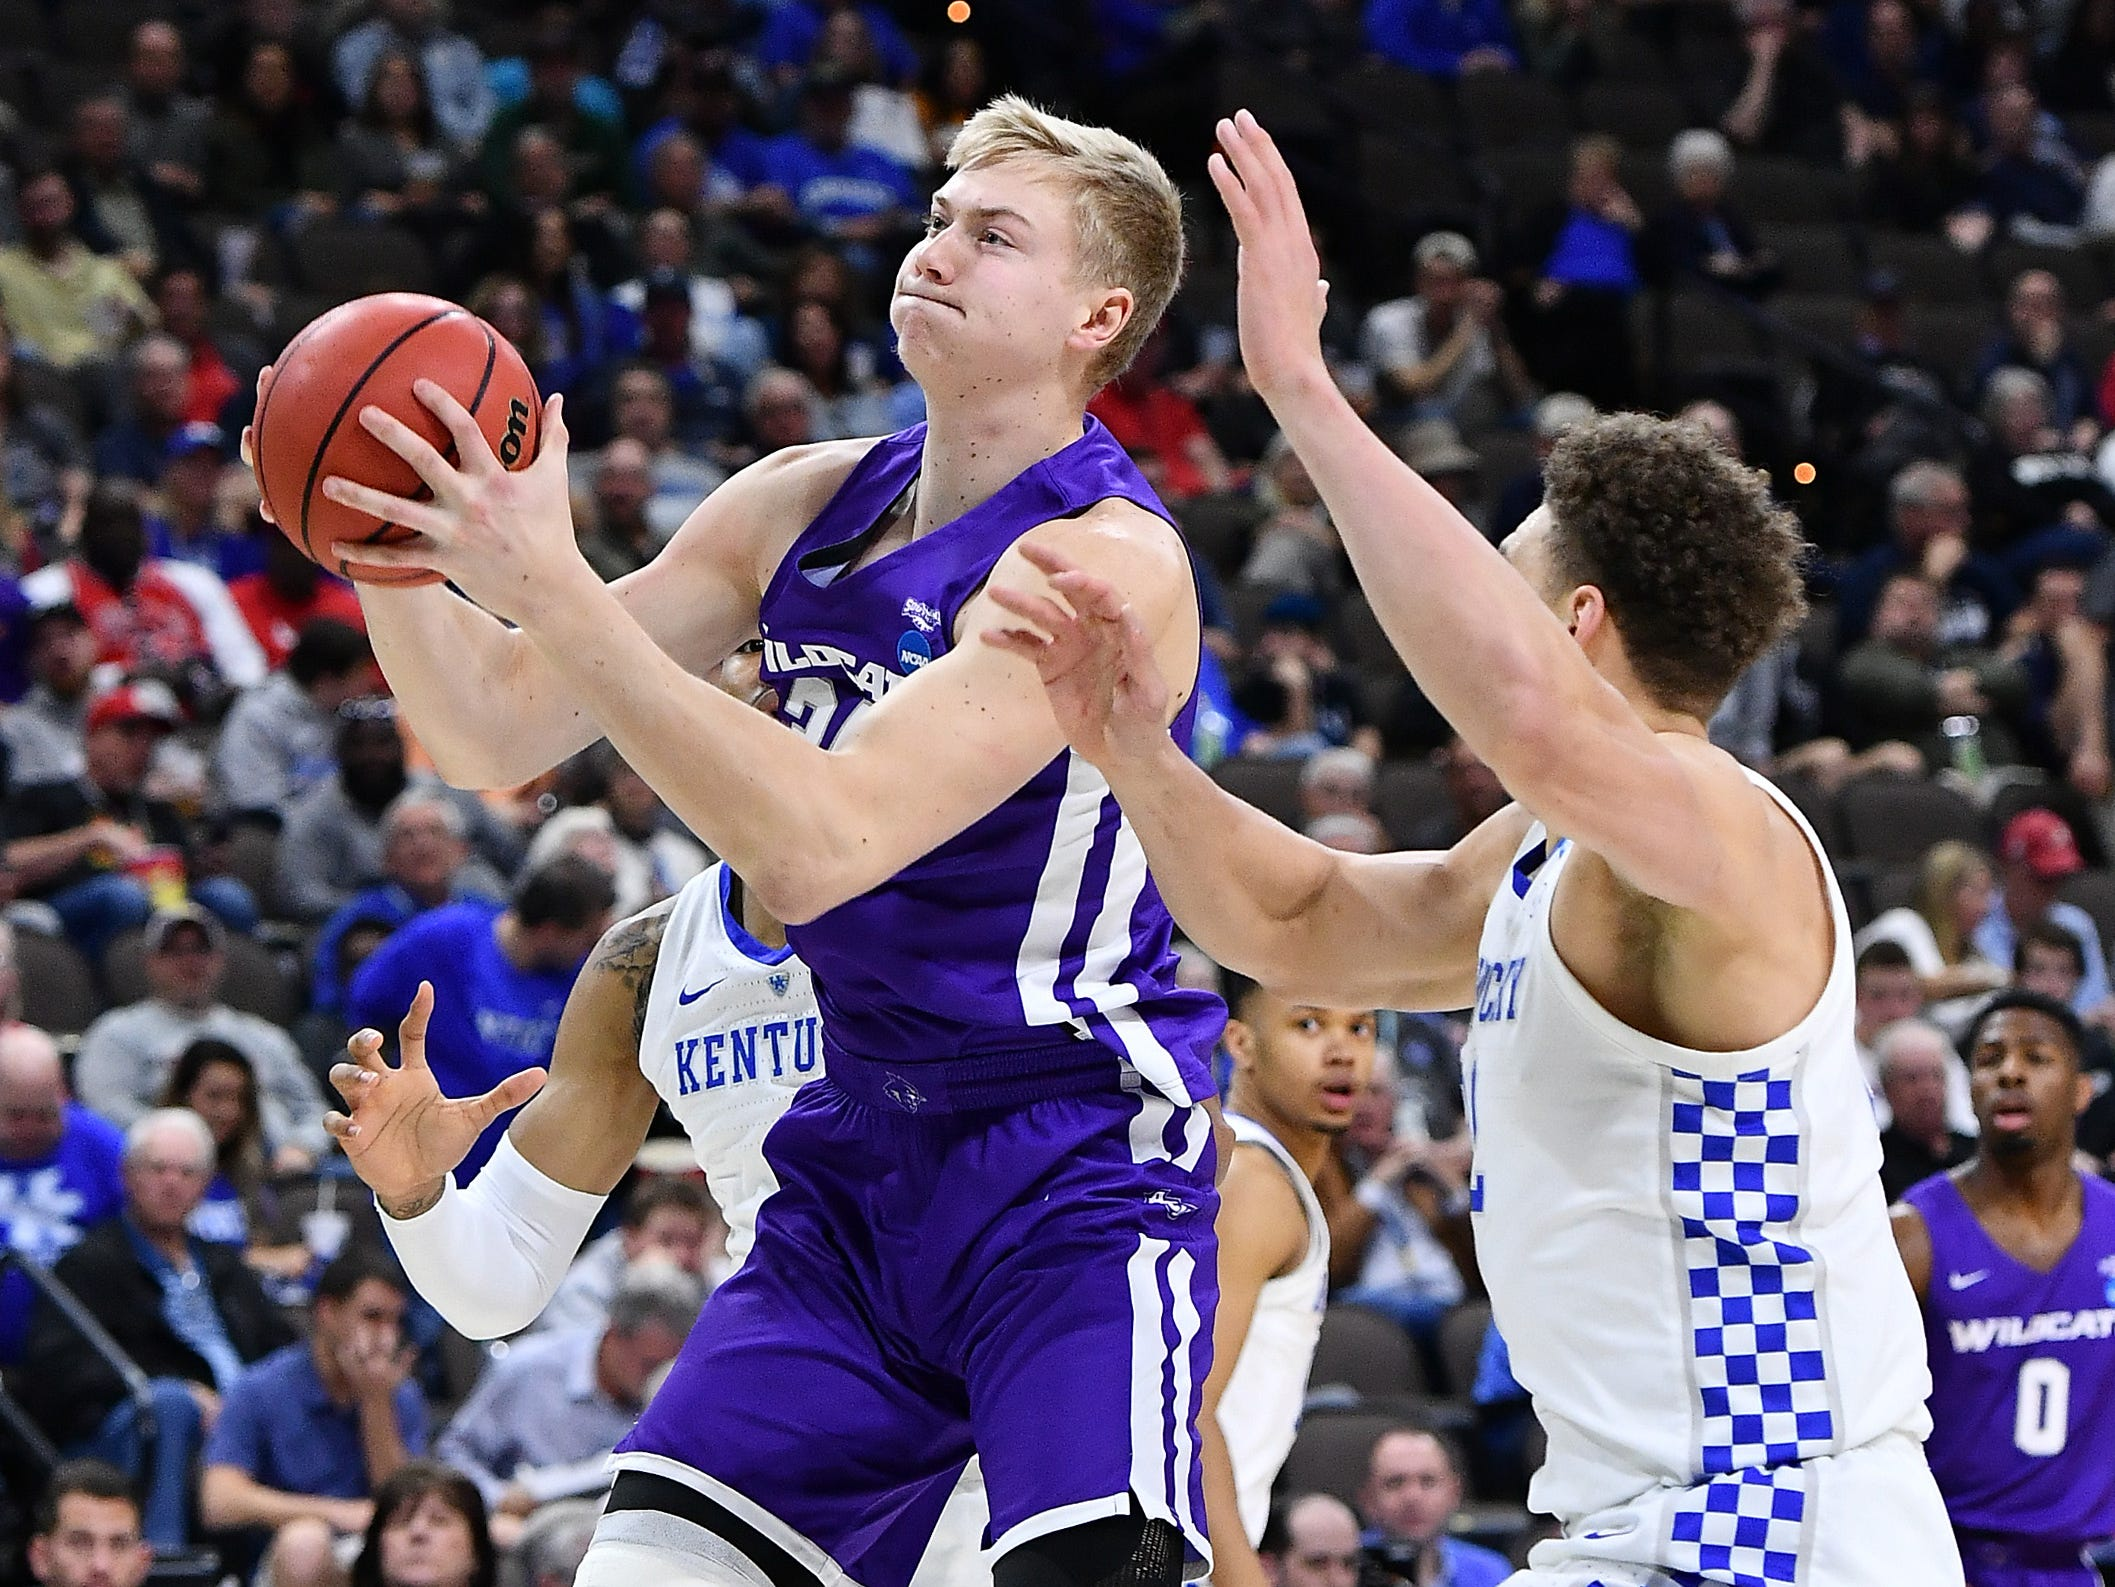 Mar 21, 2019; Jacksonville, FL, USA; Abilene Christian Wildcats center Kolton Kohl (34) shoots the ball past Kentucky Wildcats forward Reid Travis (22) during the first half in the first round of the 2019 NCAA Tournament at Jacksonville Veterans Memorial Arena. Mandatory Credit: John David Mercer-USA TODAY Sports